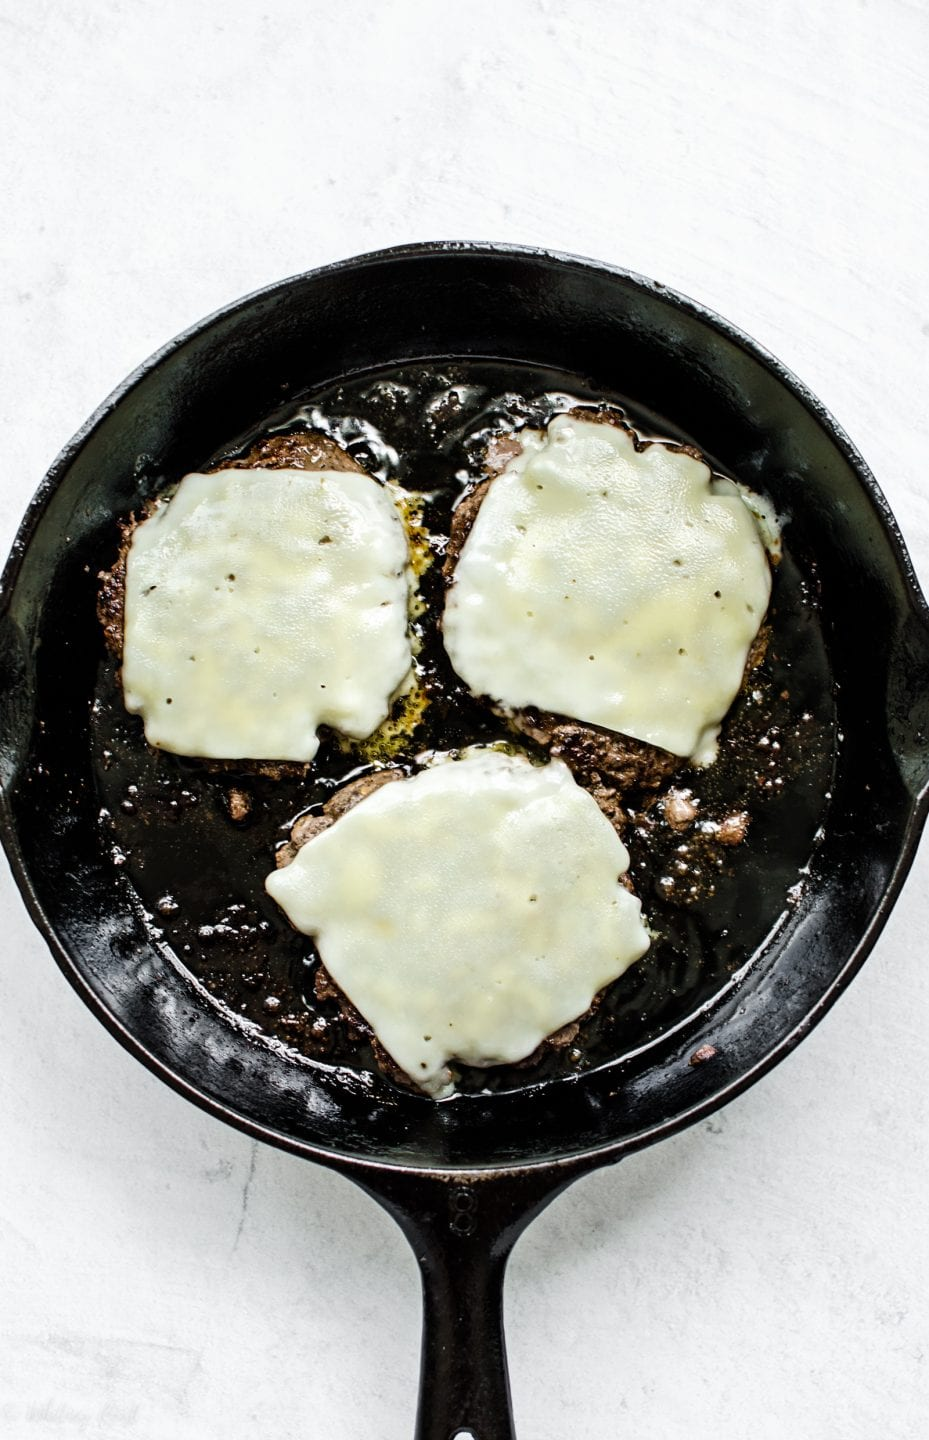 Three mushroom smashburger patties in a cast iron skillet with melted Swiss cheese on top.